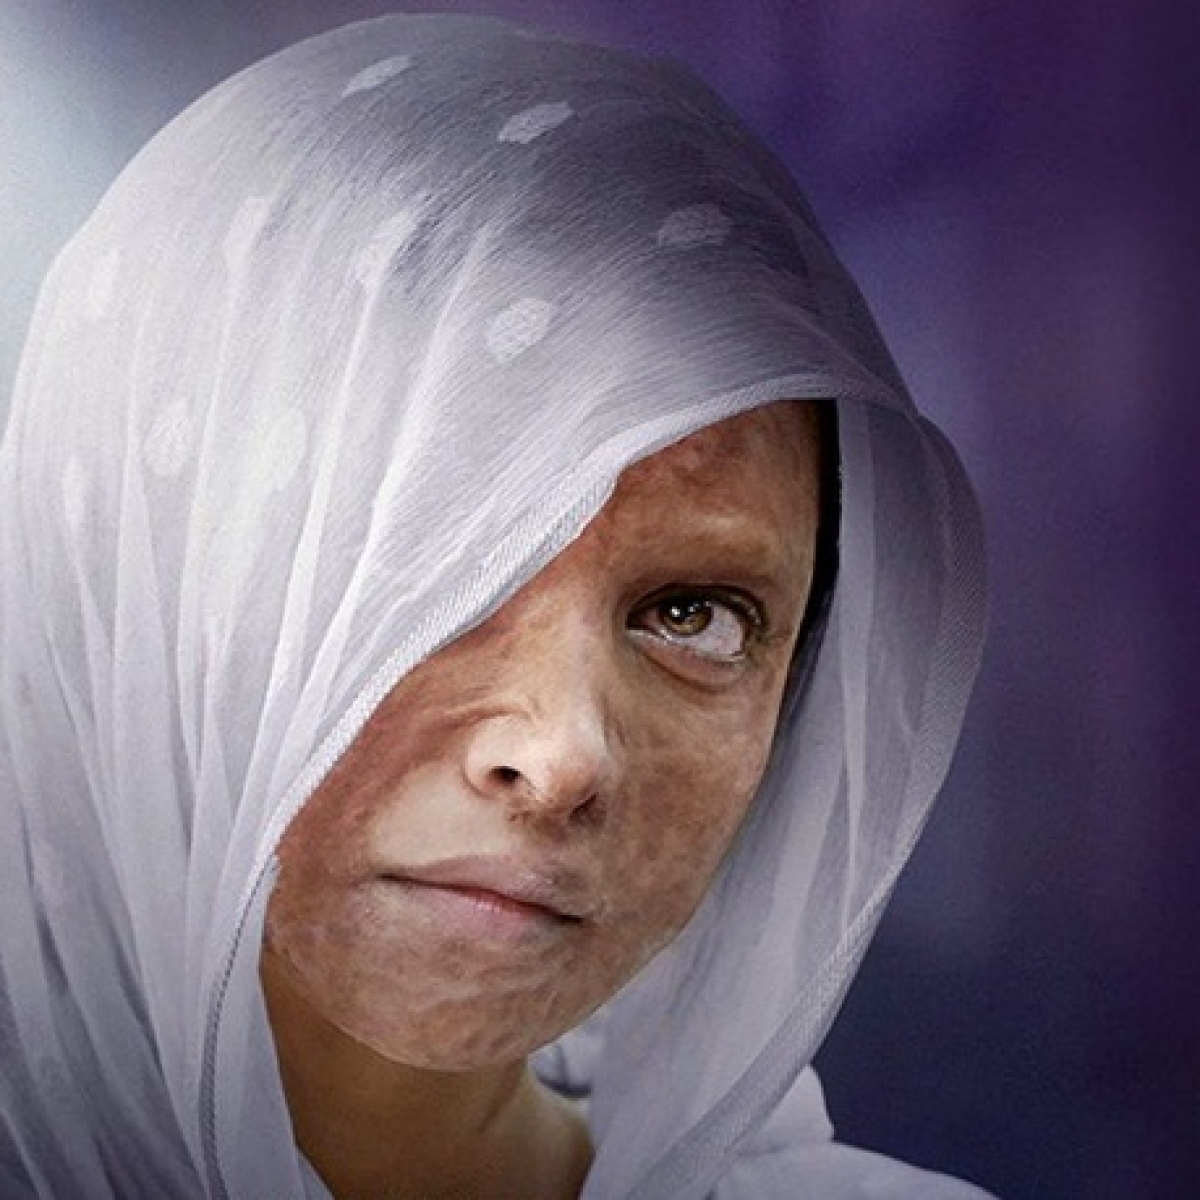 Punjab screens 'Chhapaak' for acid attack survivors